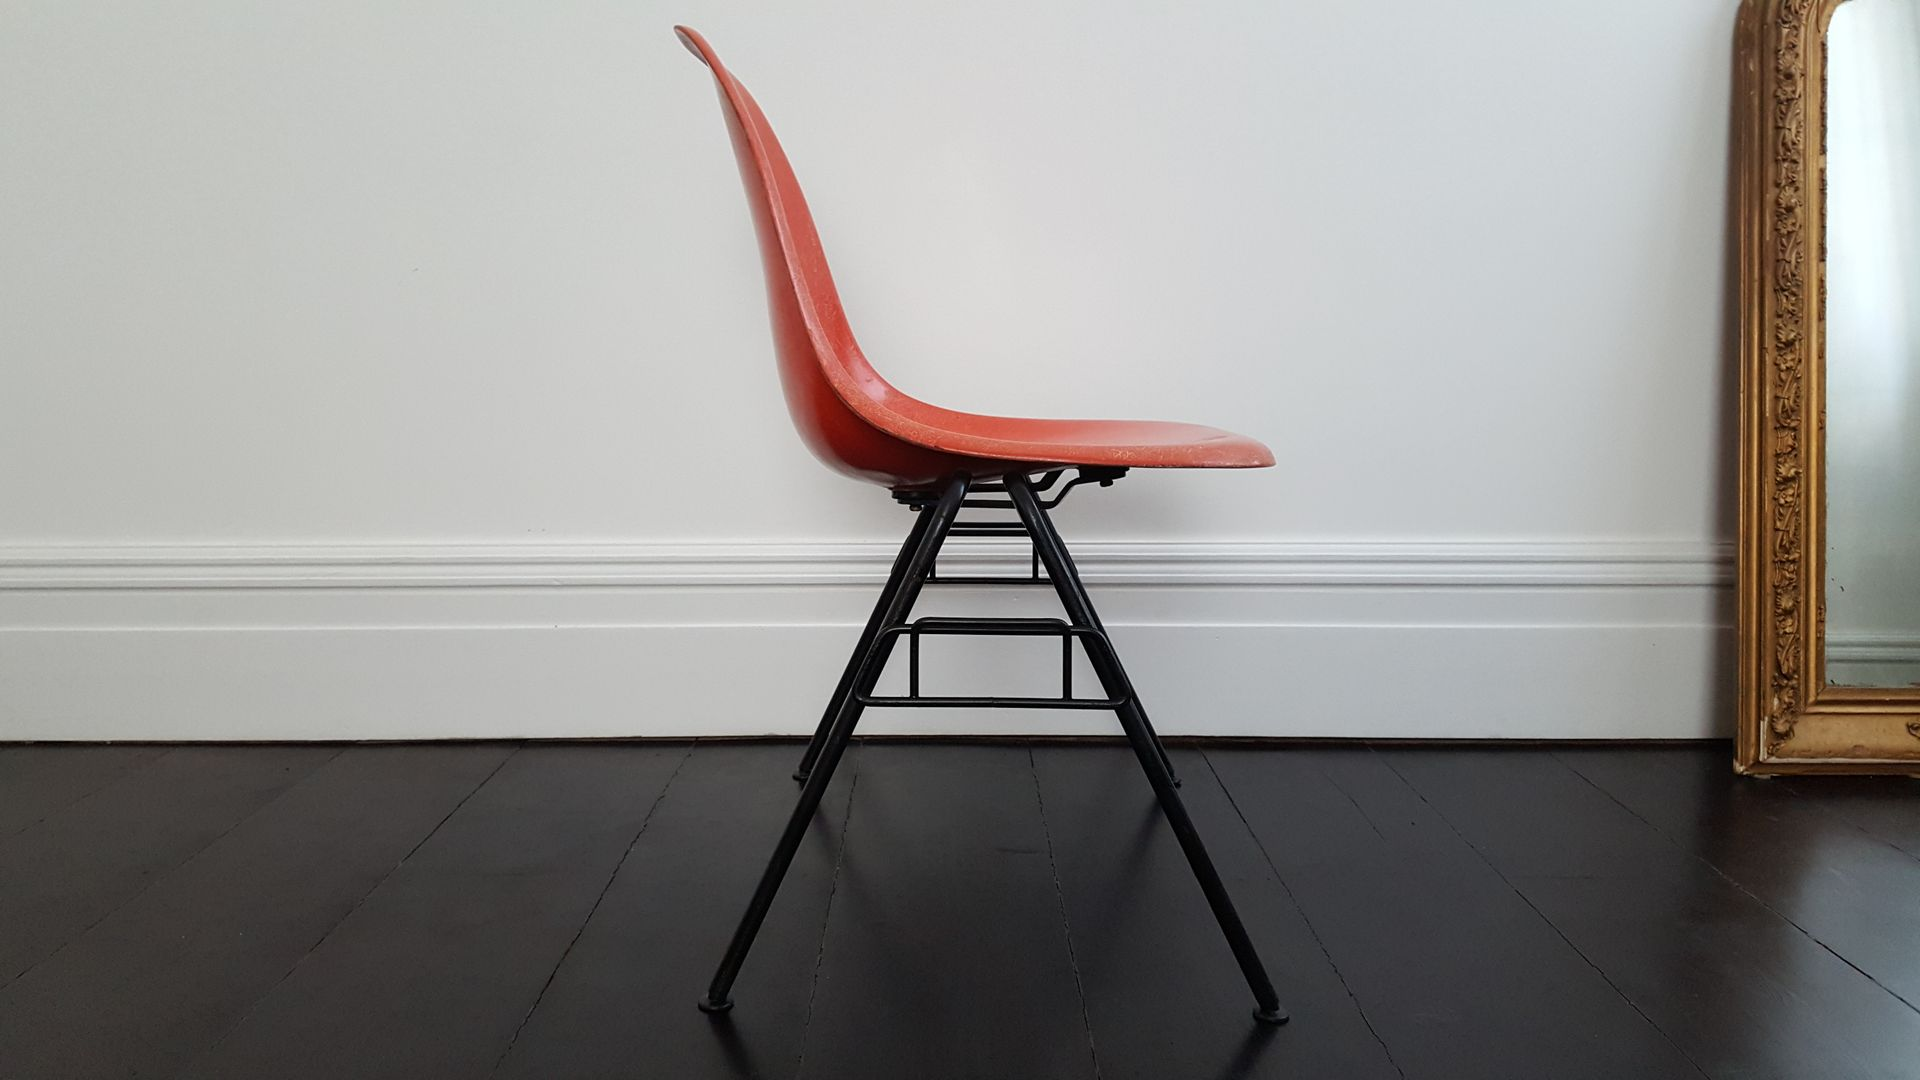 Orange DSS Fiberglass Stacking Chair by Charles & Ray Eames for